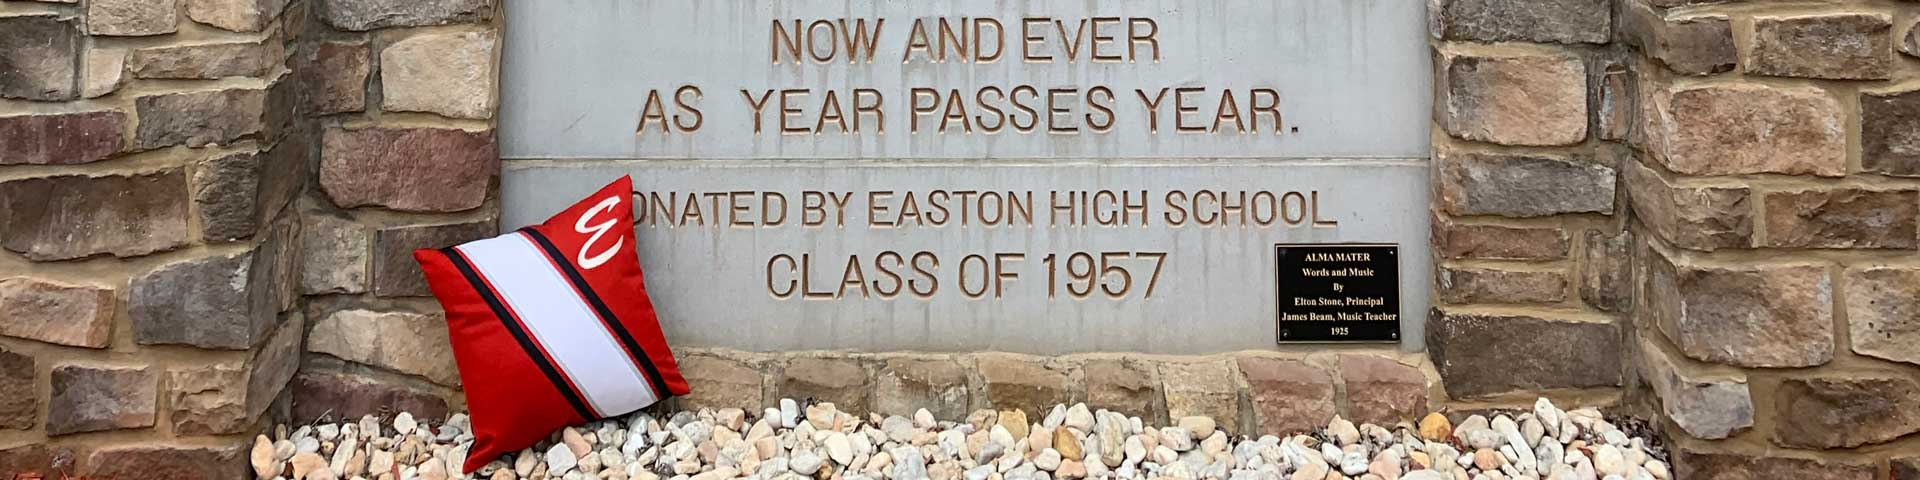 Uniform pillow resting in front of the Easton alma mater sign